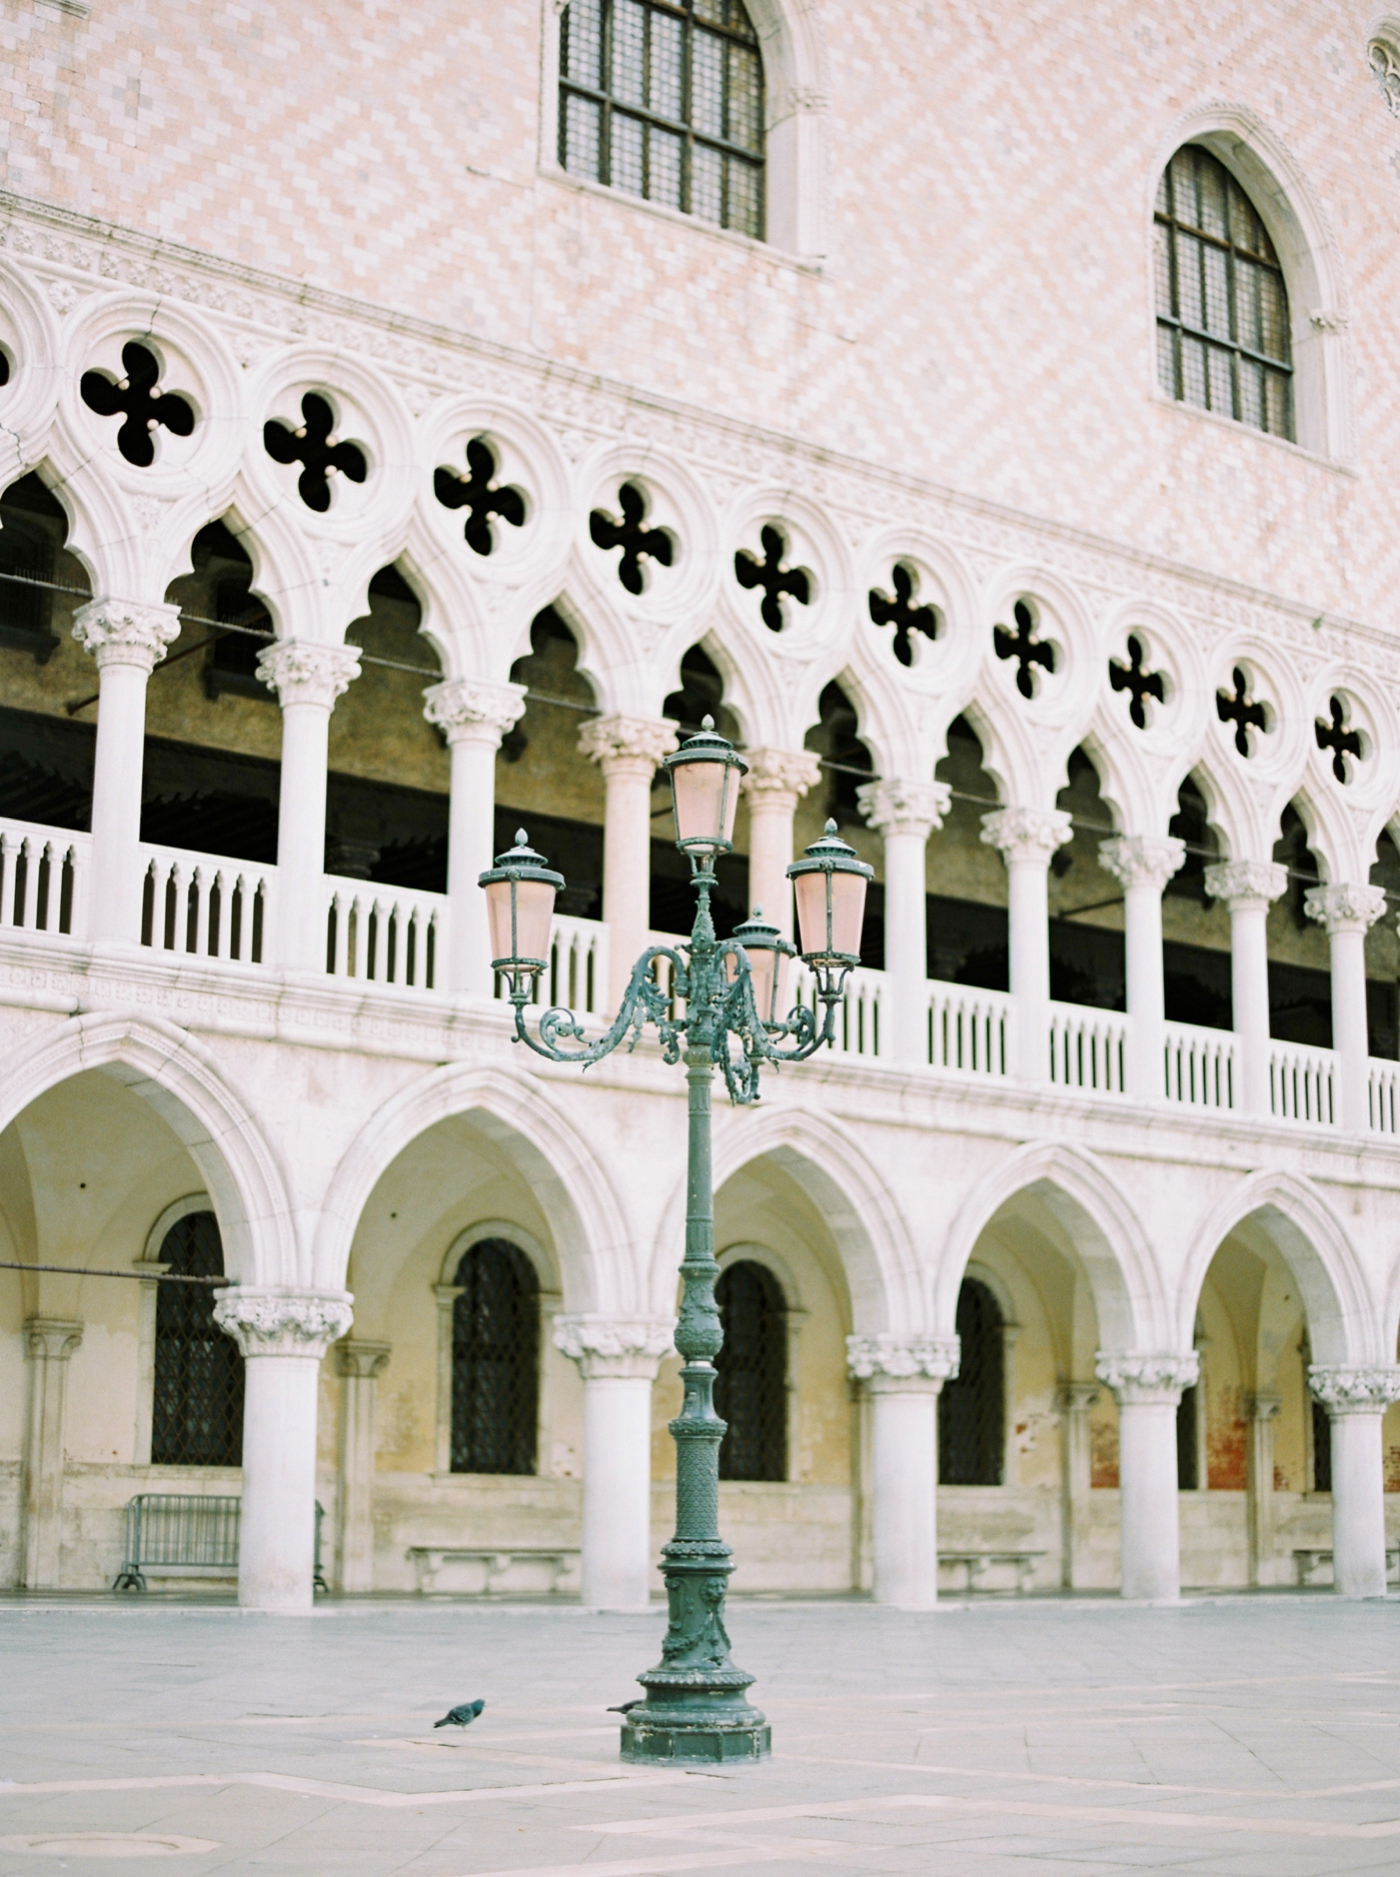 Venice Italy commercial travel photographer | fine art film prints | justine milton photography